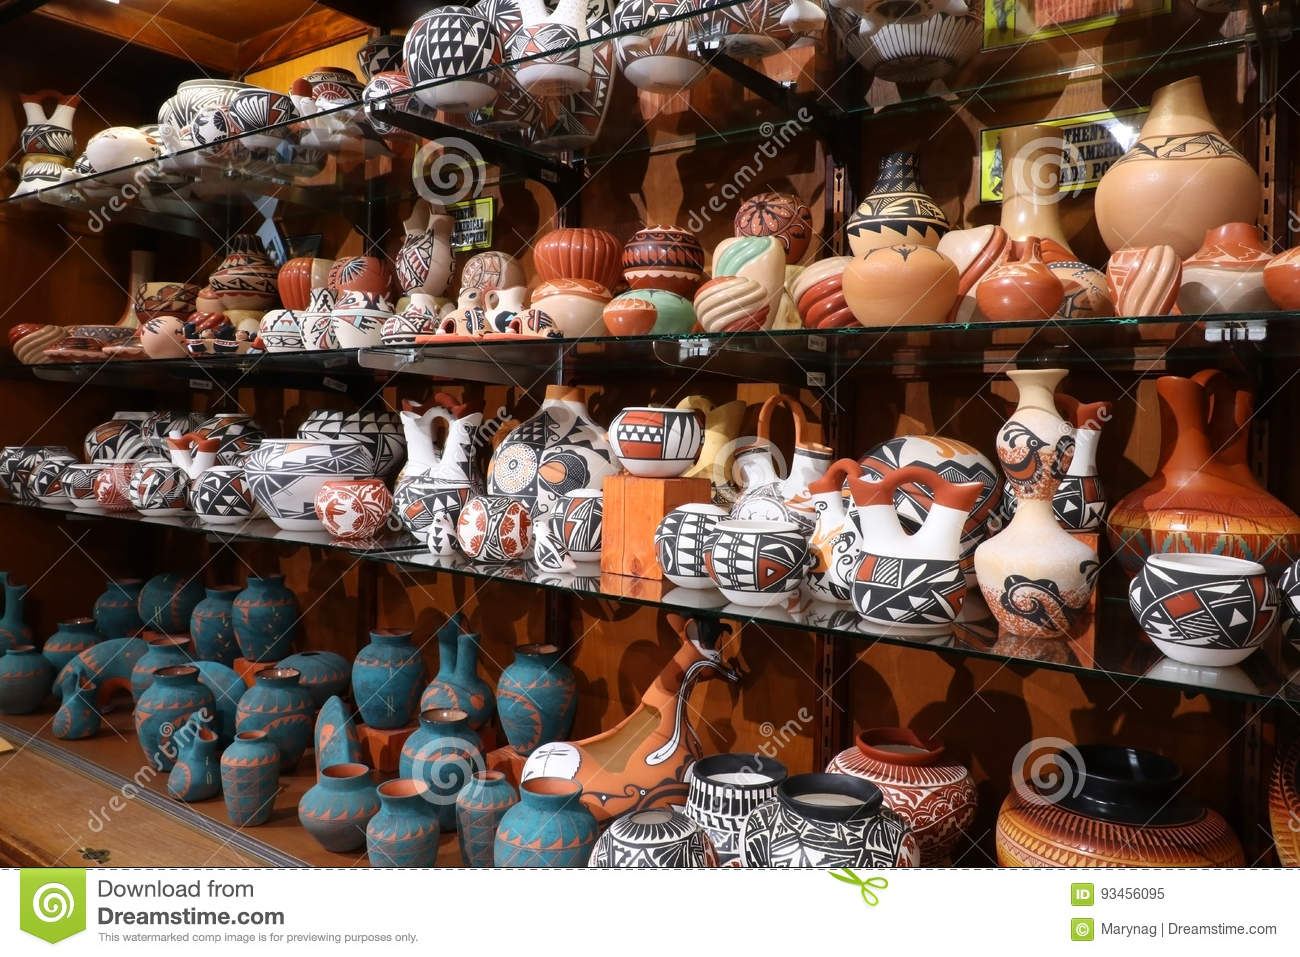 Native Americans Craft Gift Shop  Stock Image - Image of